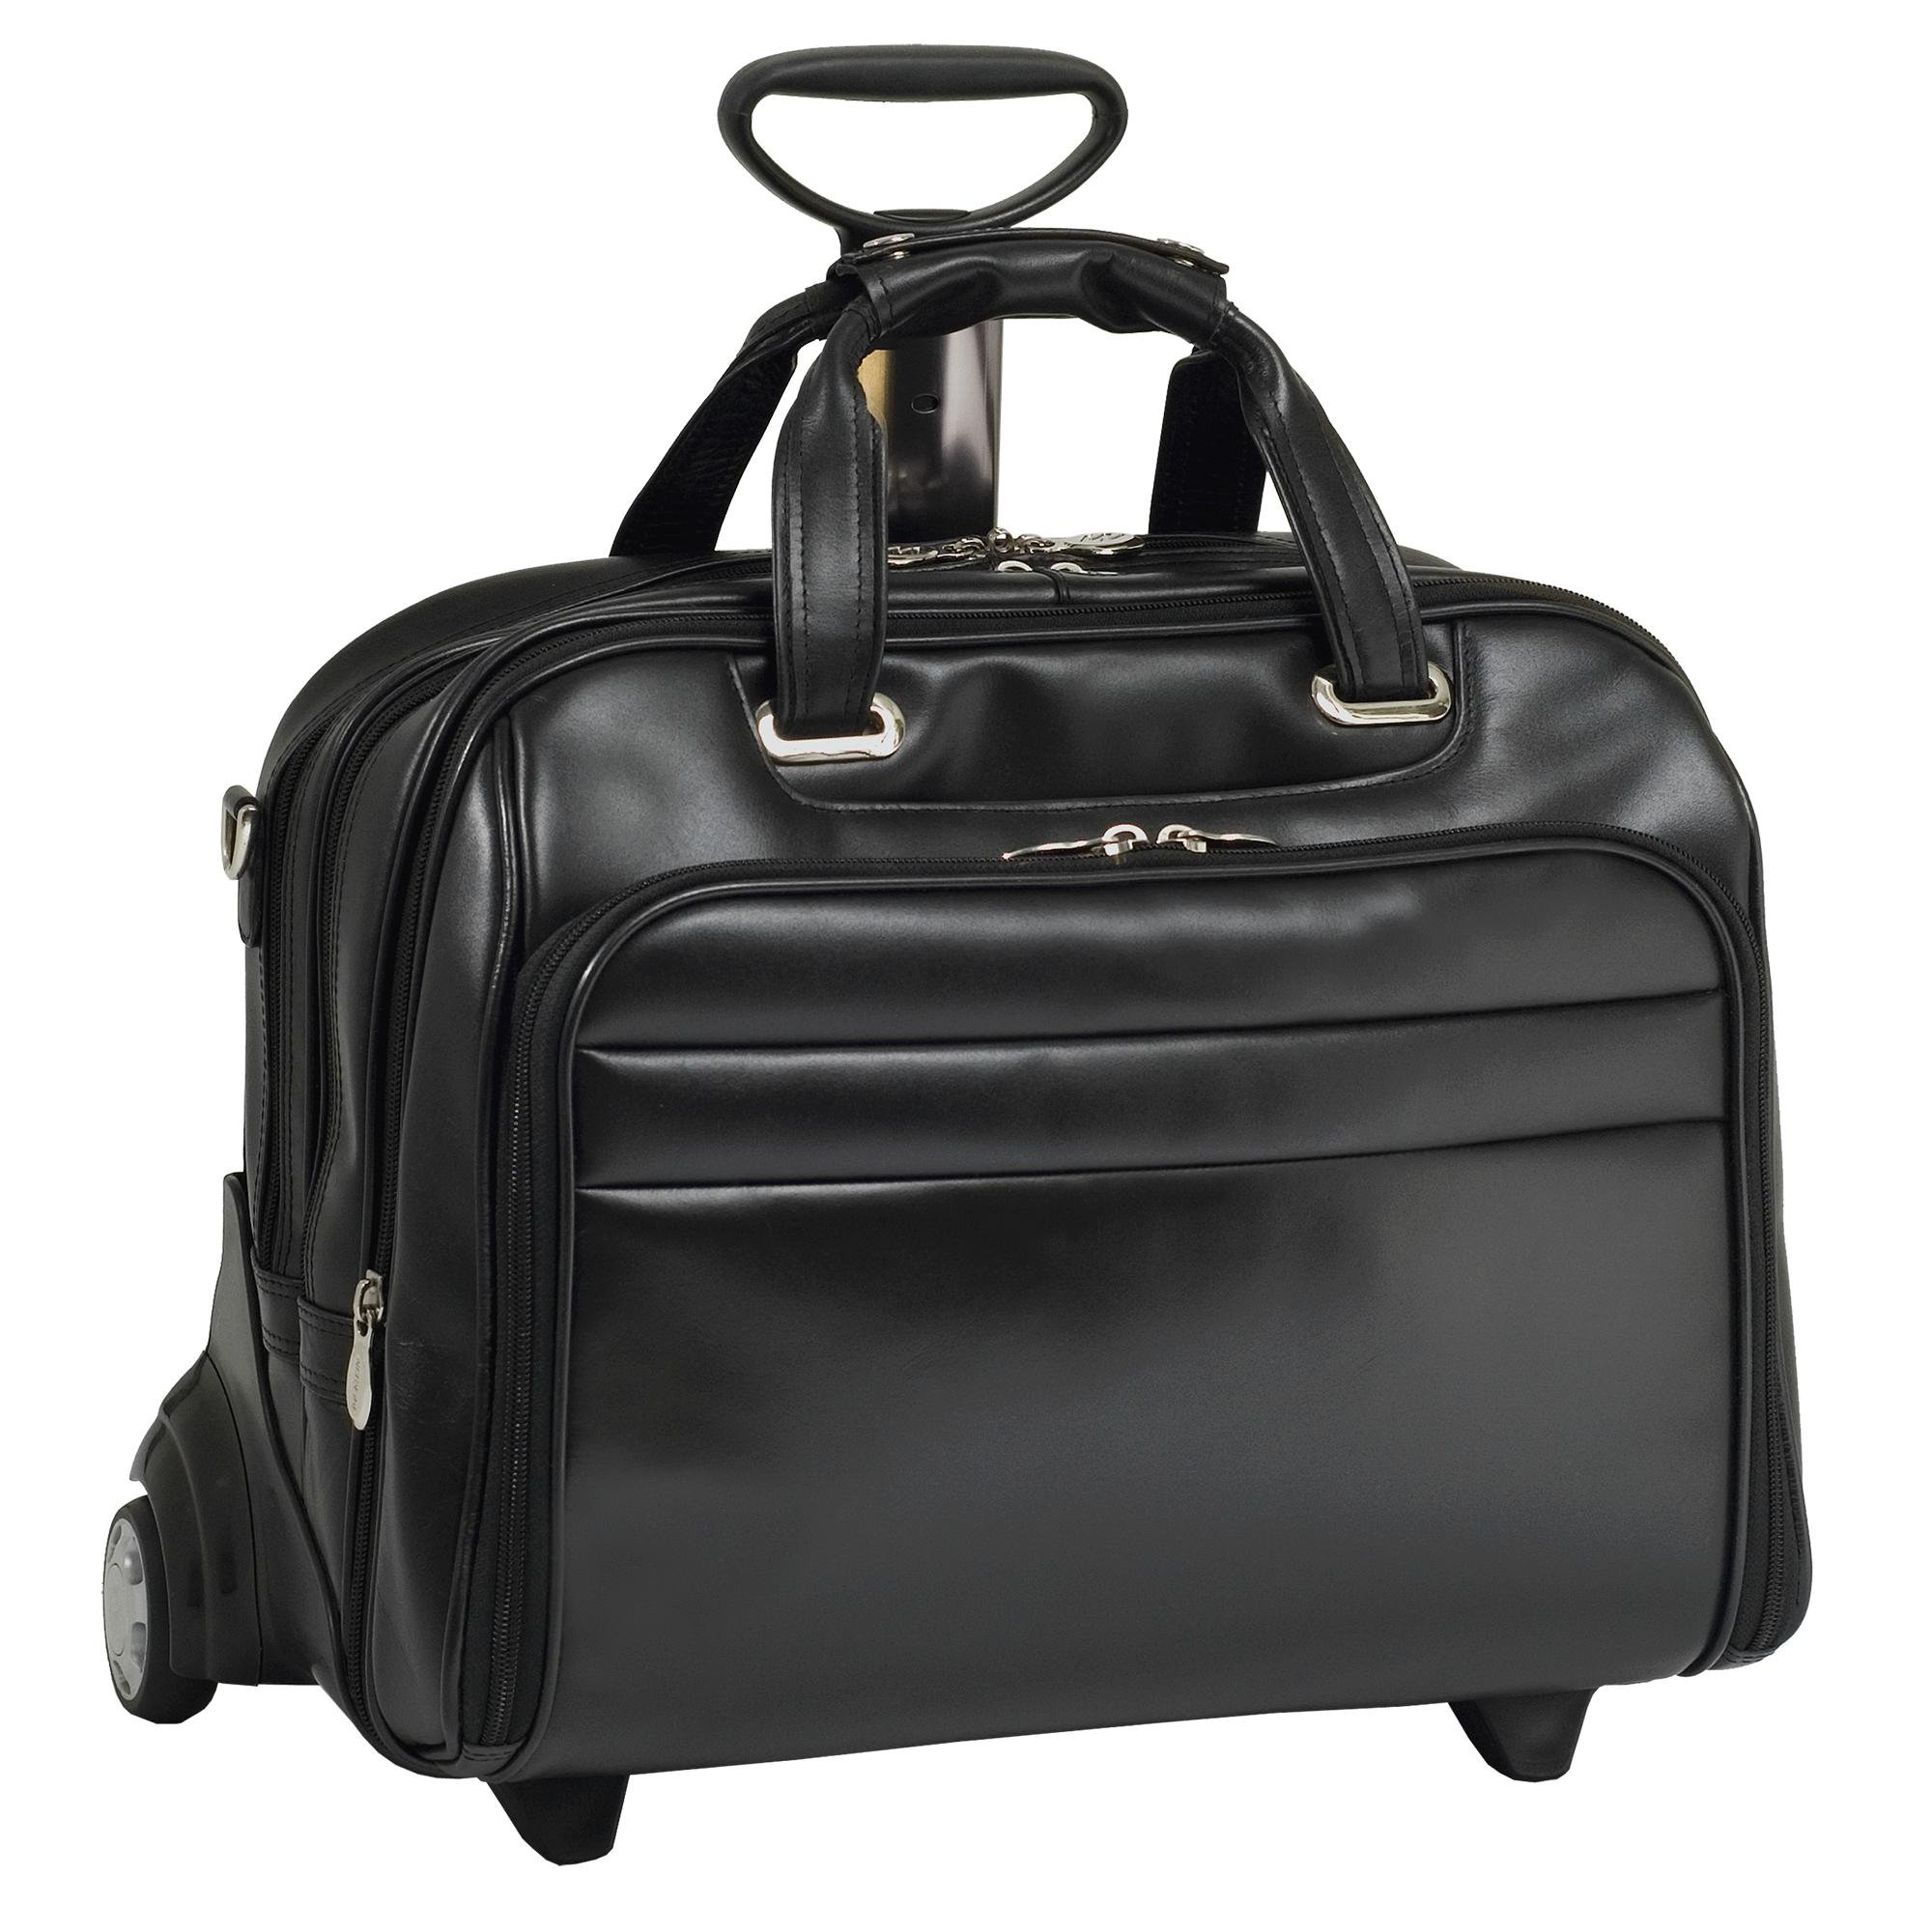 Mcklein USA 86605 Midway , 15.6'' Leather Check point friendly Detachable Wheeled Laptop Case